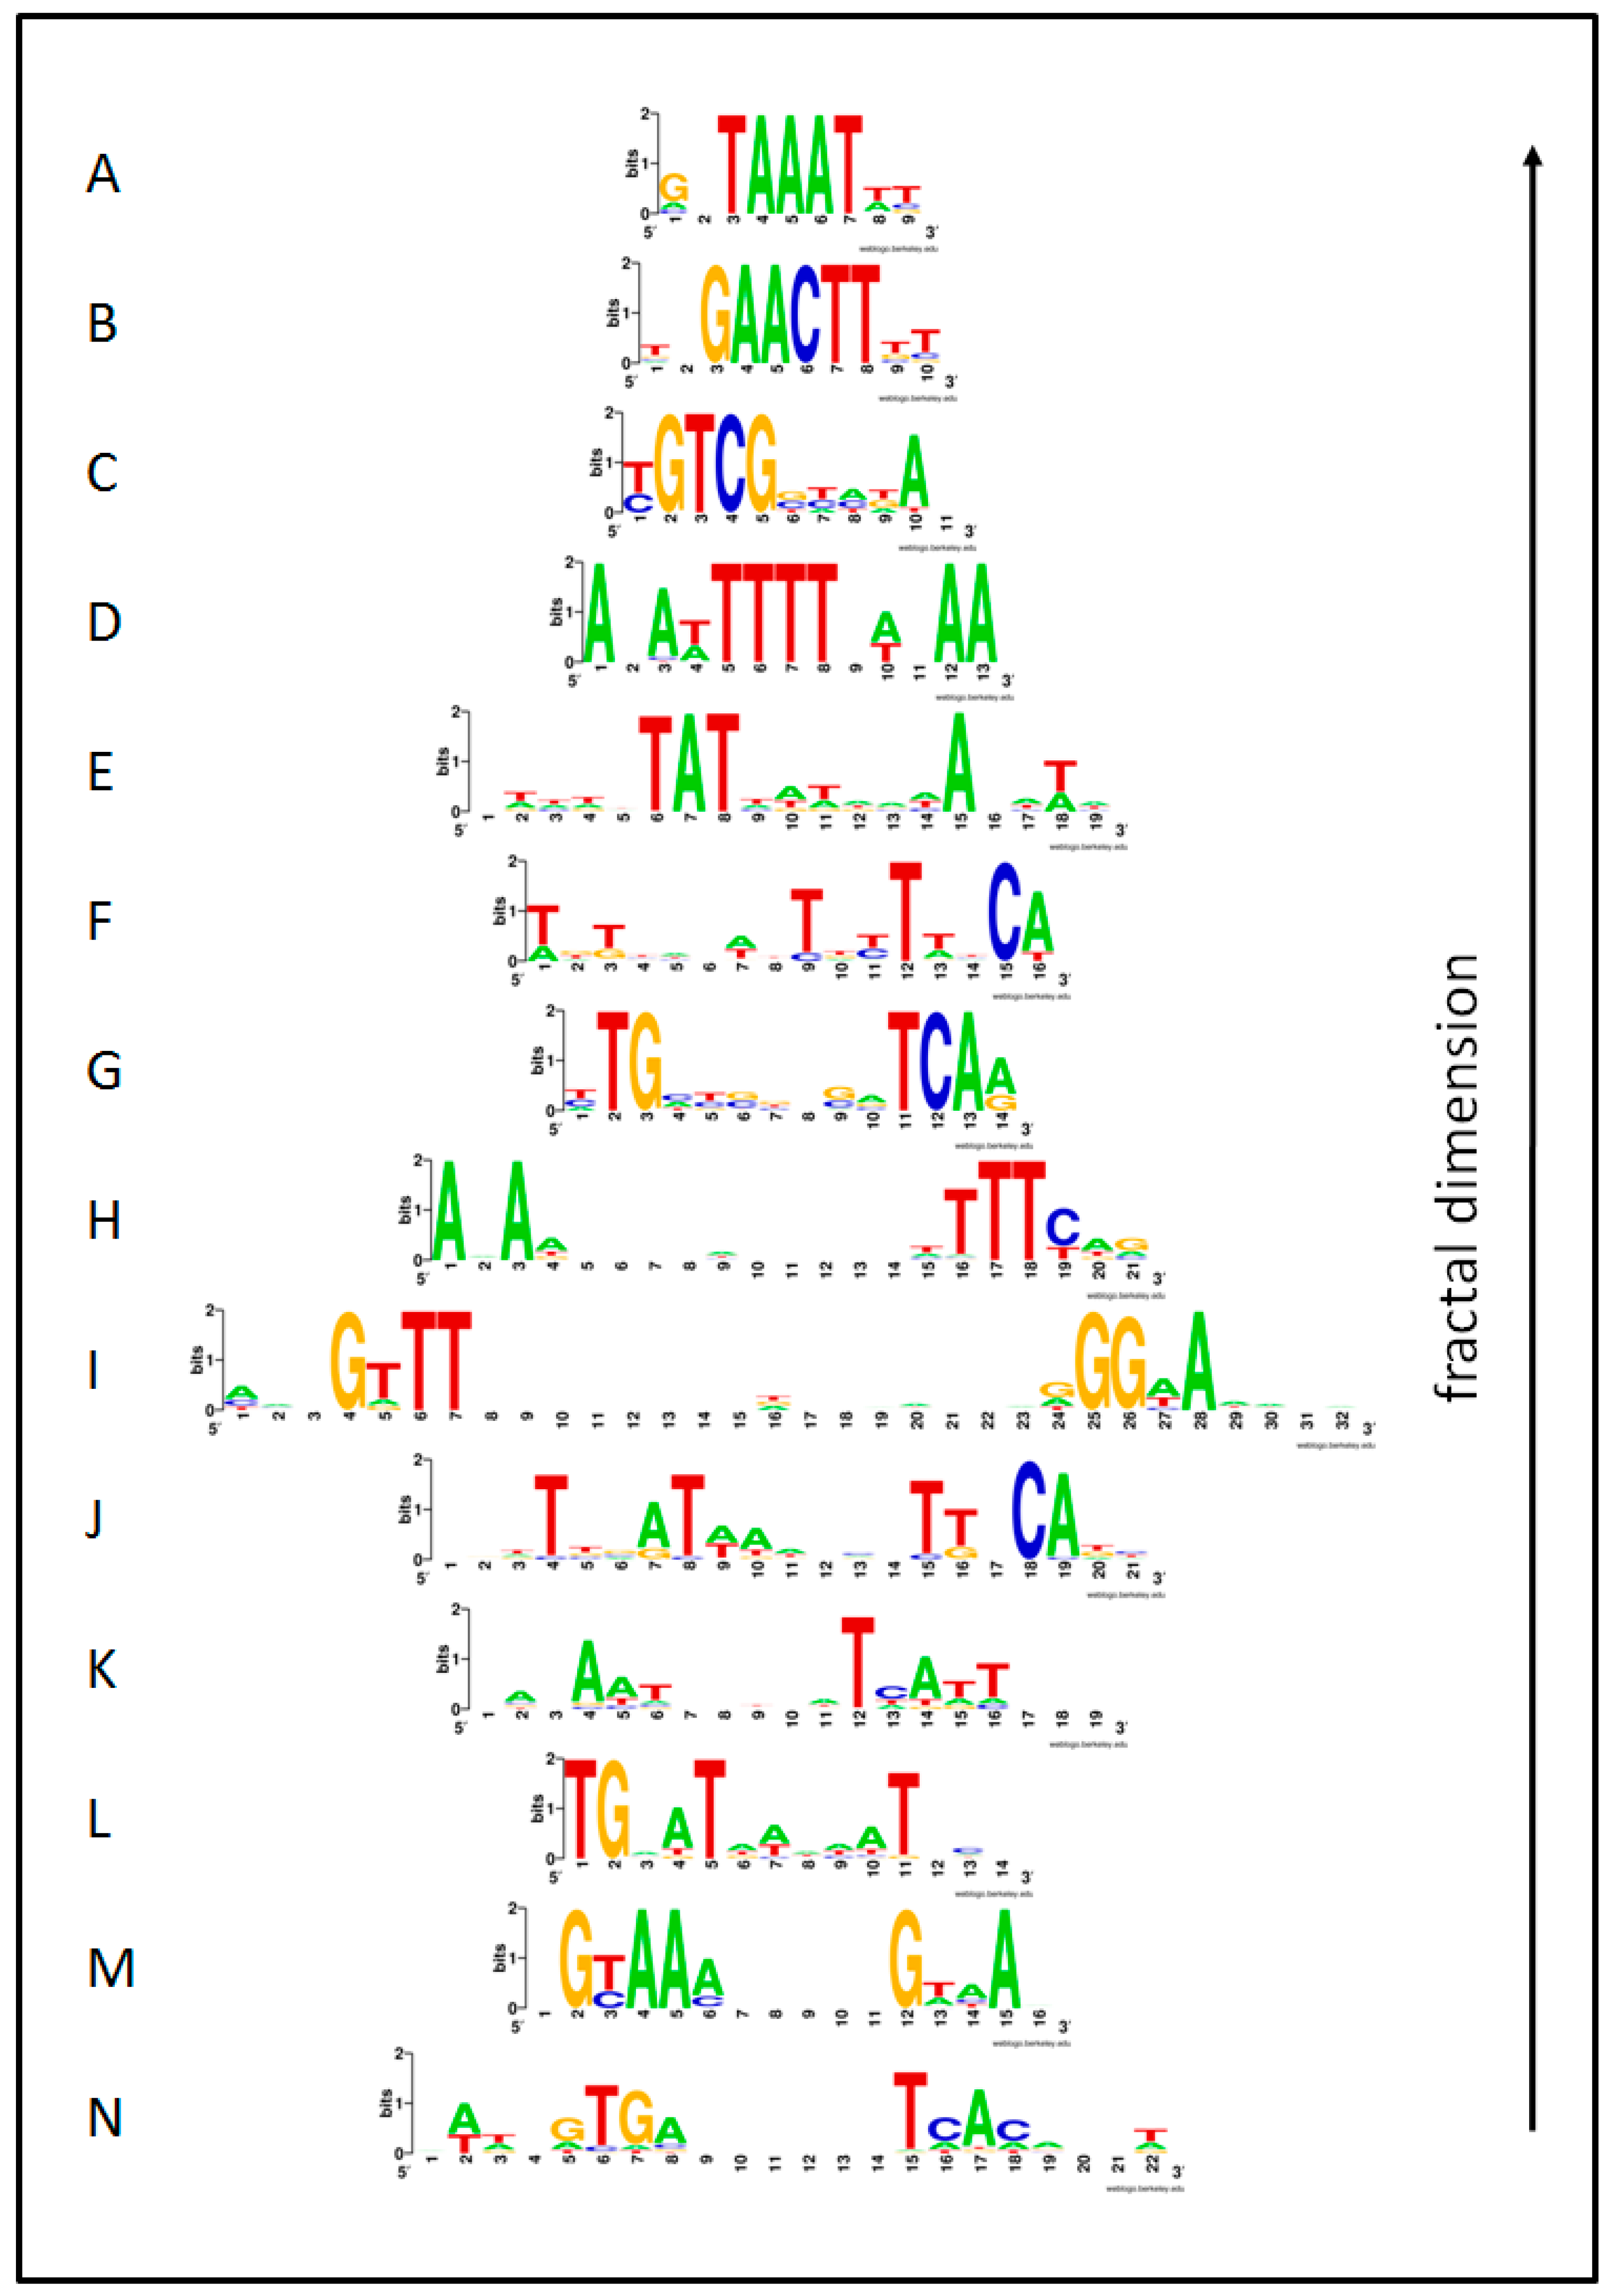 Symmetry | Free Full-Text | Symmetry in the Language of Gene